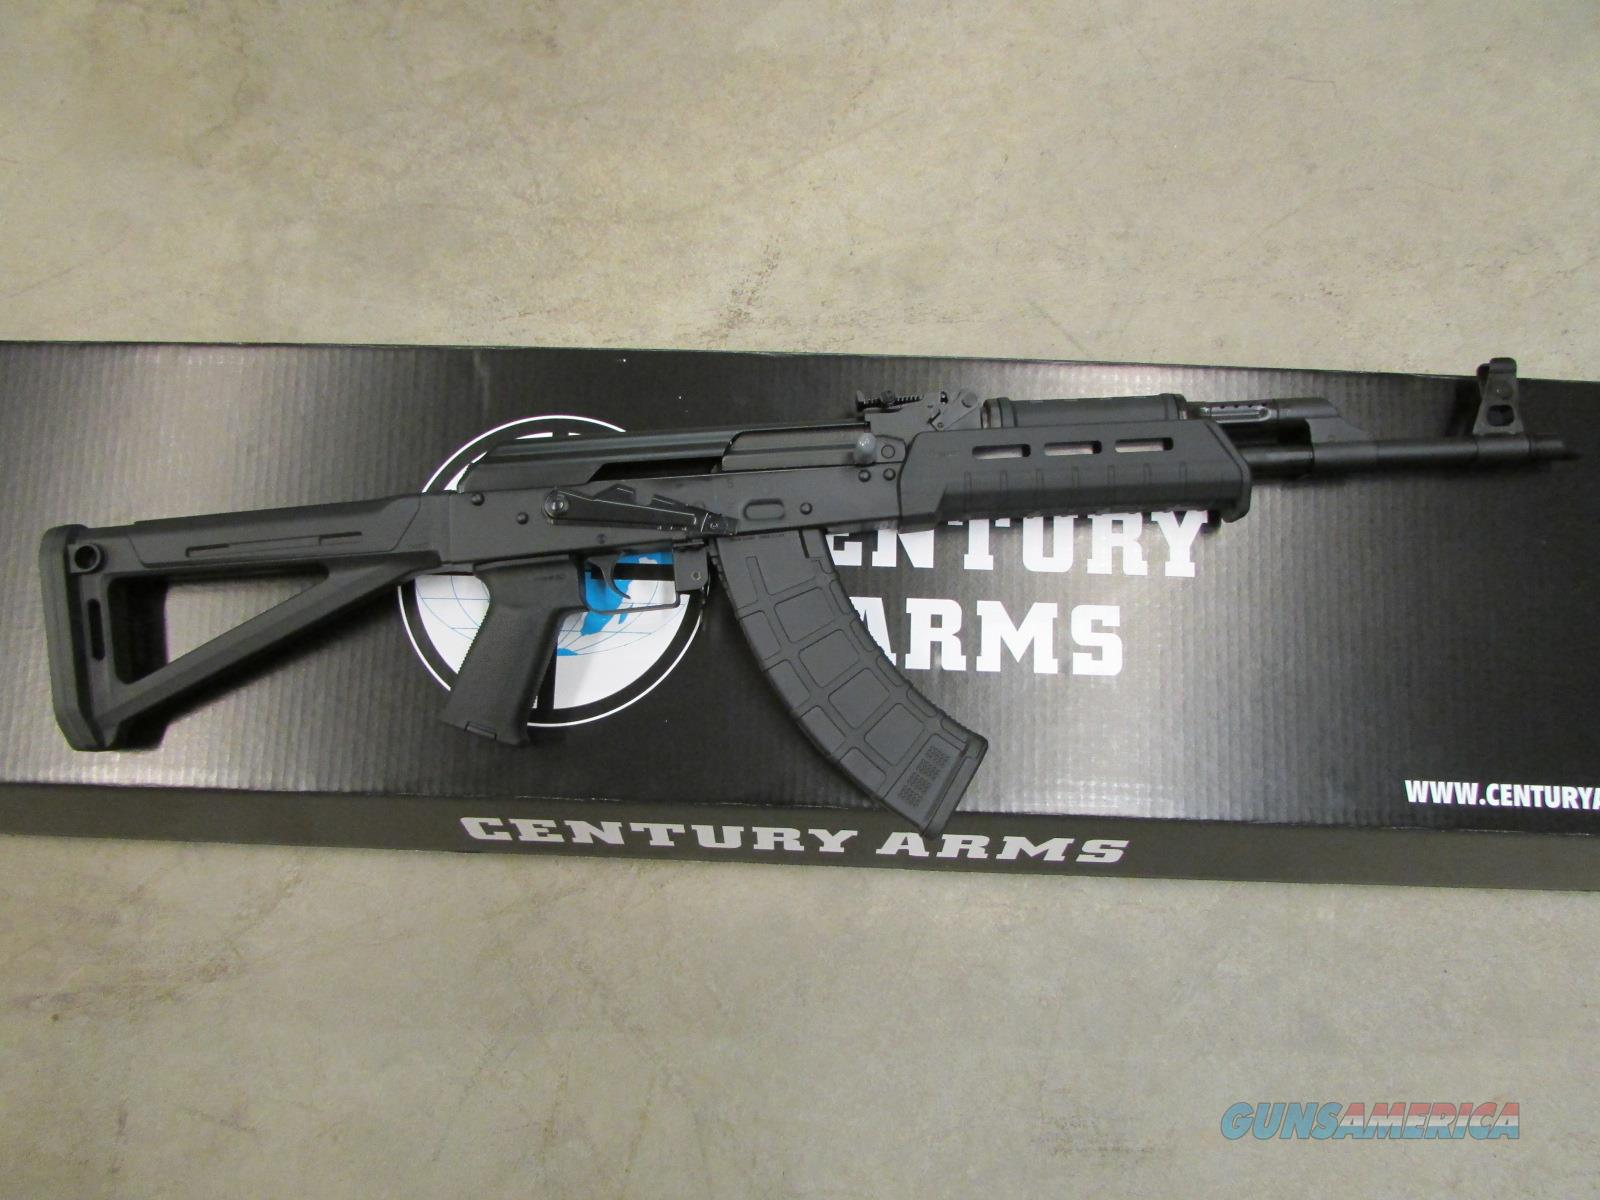 Century Arms Ras47 Magpul Furniture 7 62x39 Ak For Sale